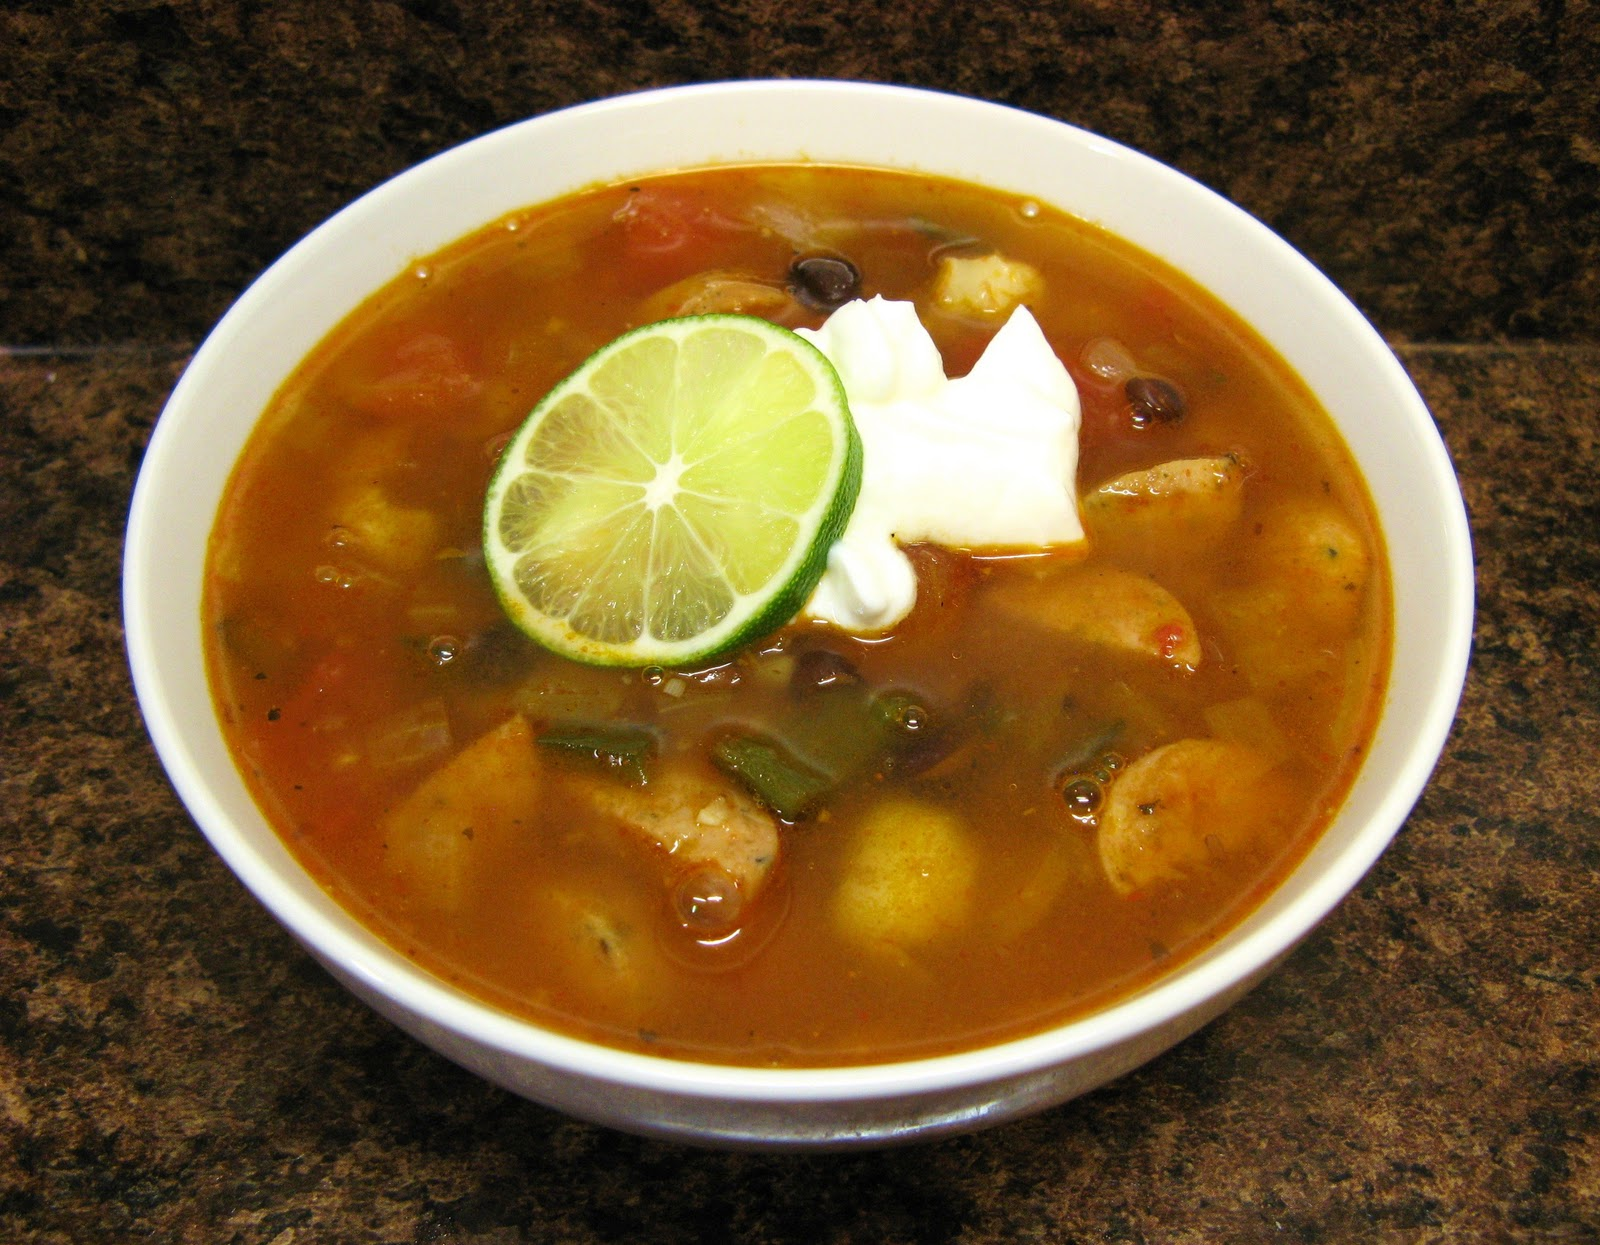 ... -Fed Newlyweds: Tex-Mex Chicken Sausage, Black Bean, and Hominy Soup